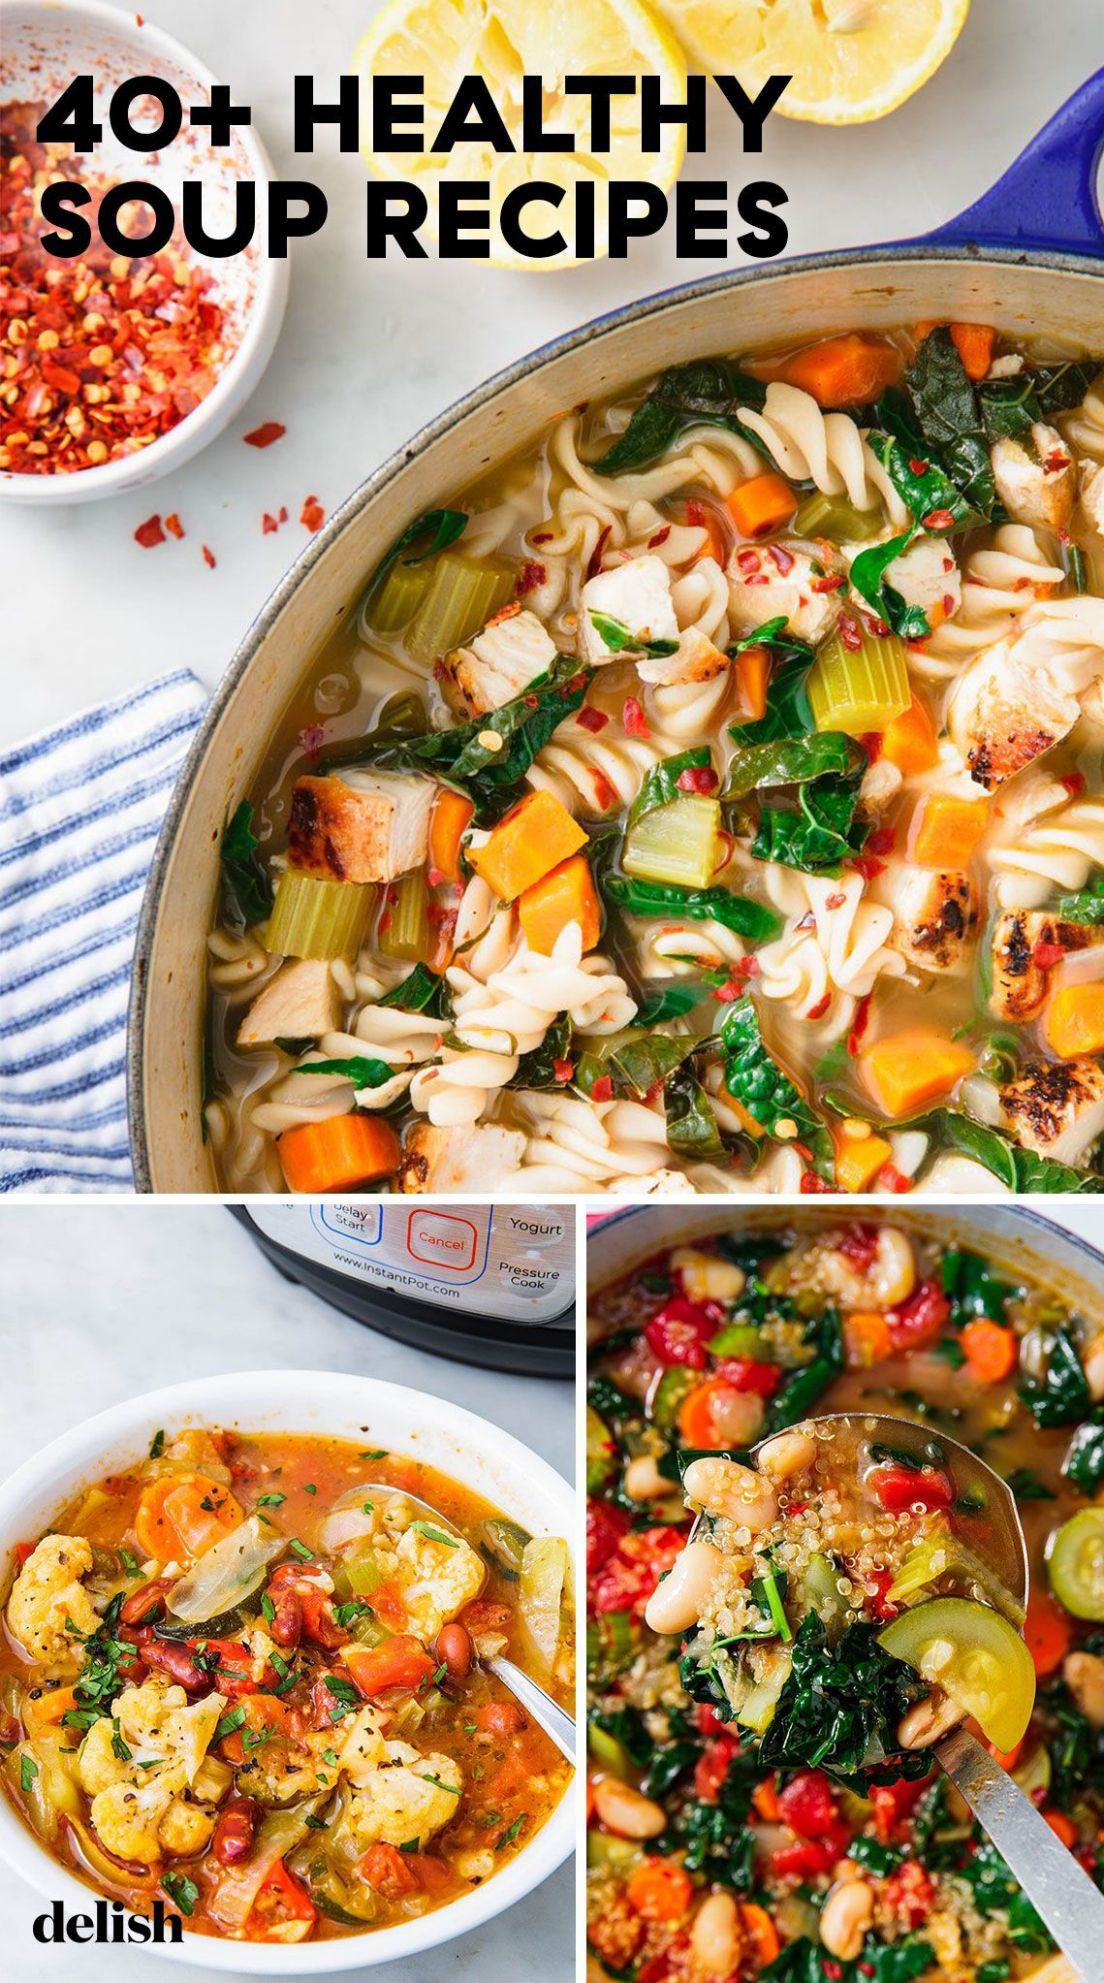 9+ Best Healthy Soup Recipes - Easy Ideas for Healthier Soups